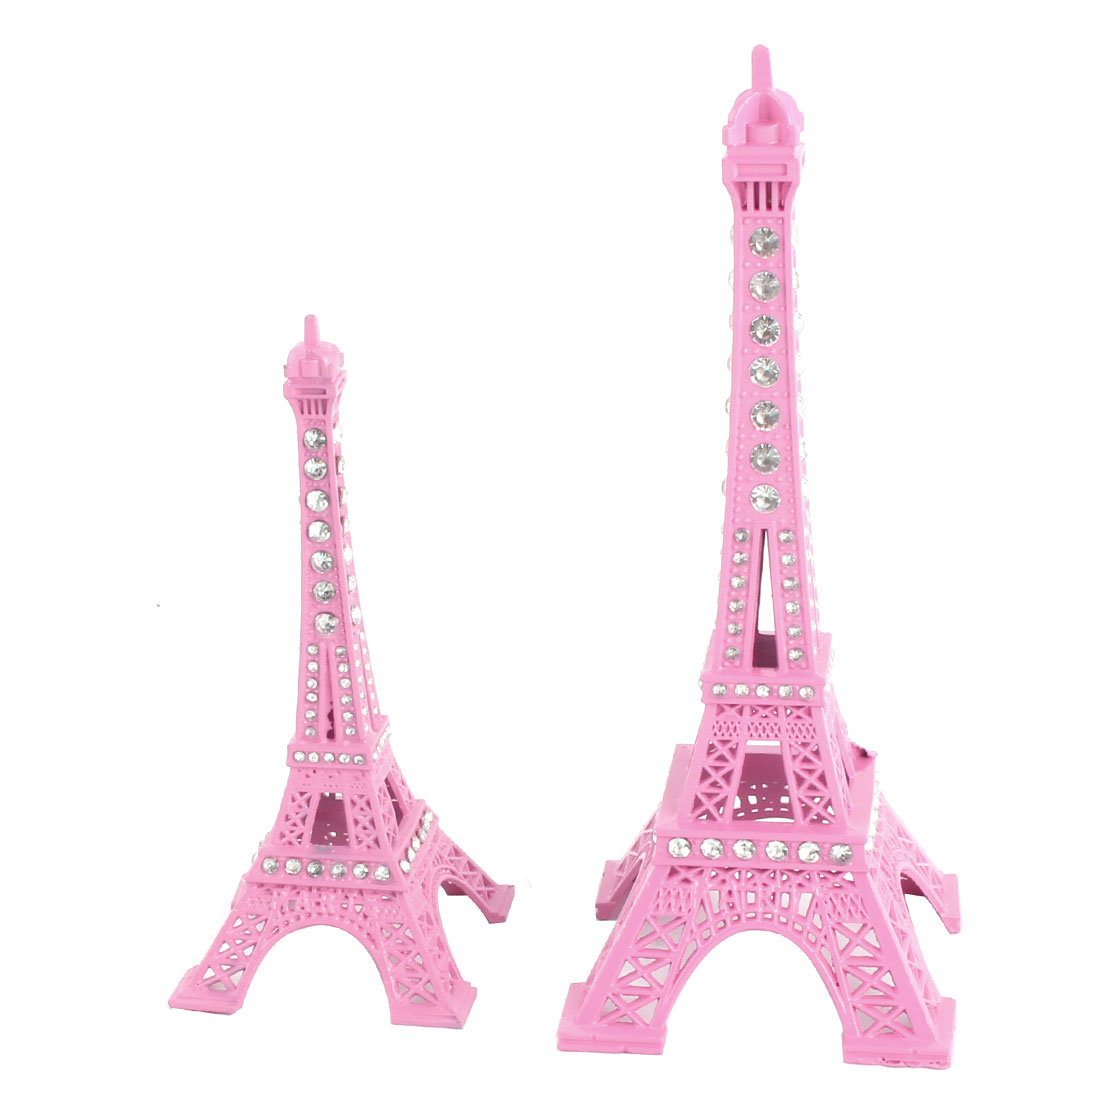 Office Desk Metal Miniature Statue Eiffel Tower Model Souvenir Ornament 2 in 1